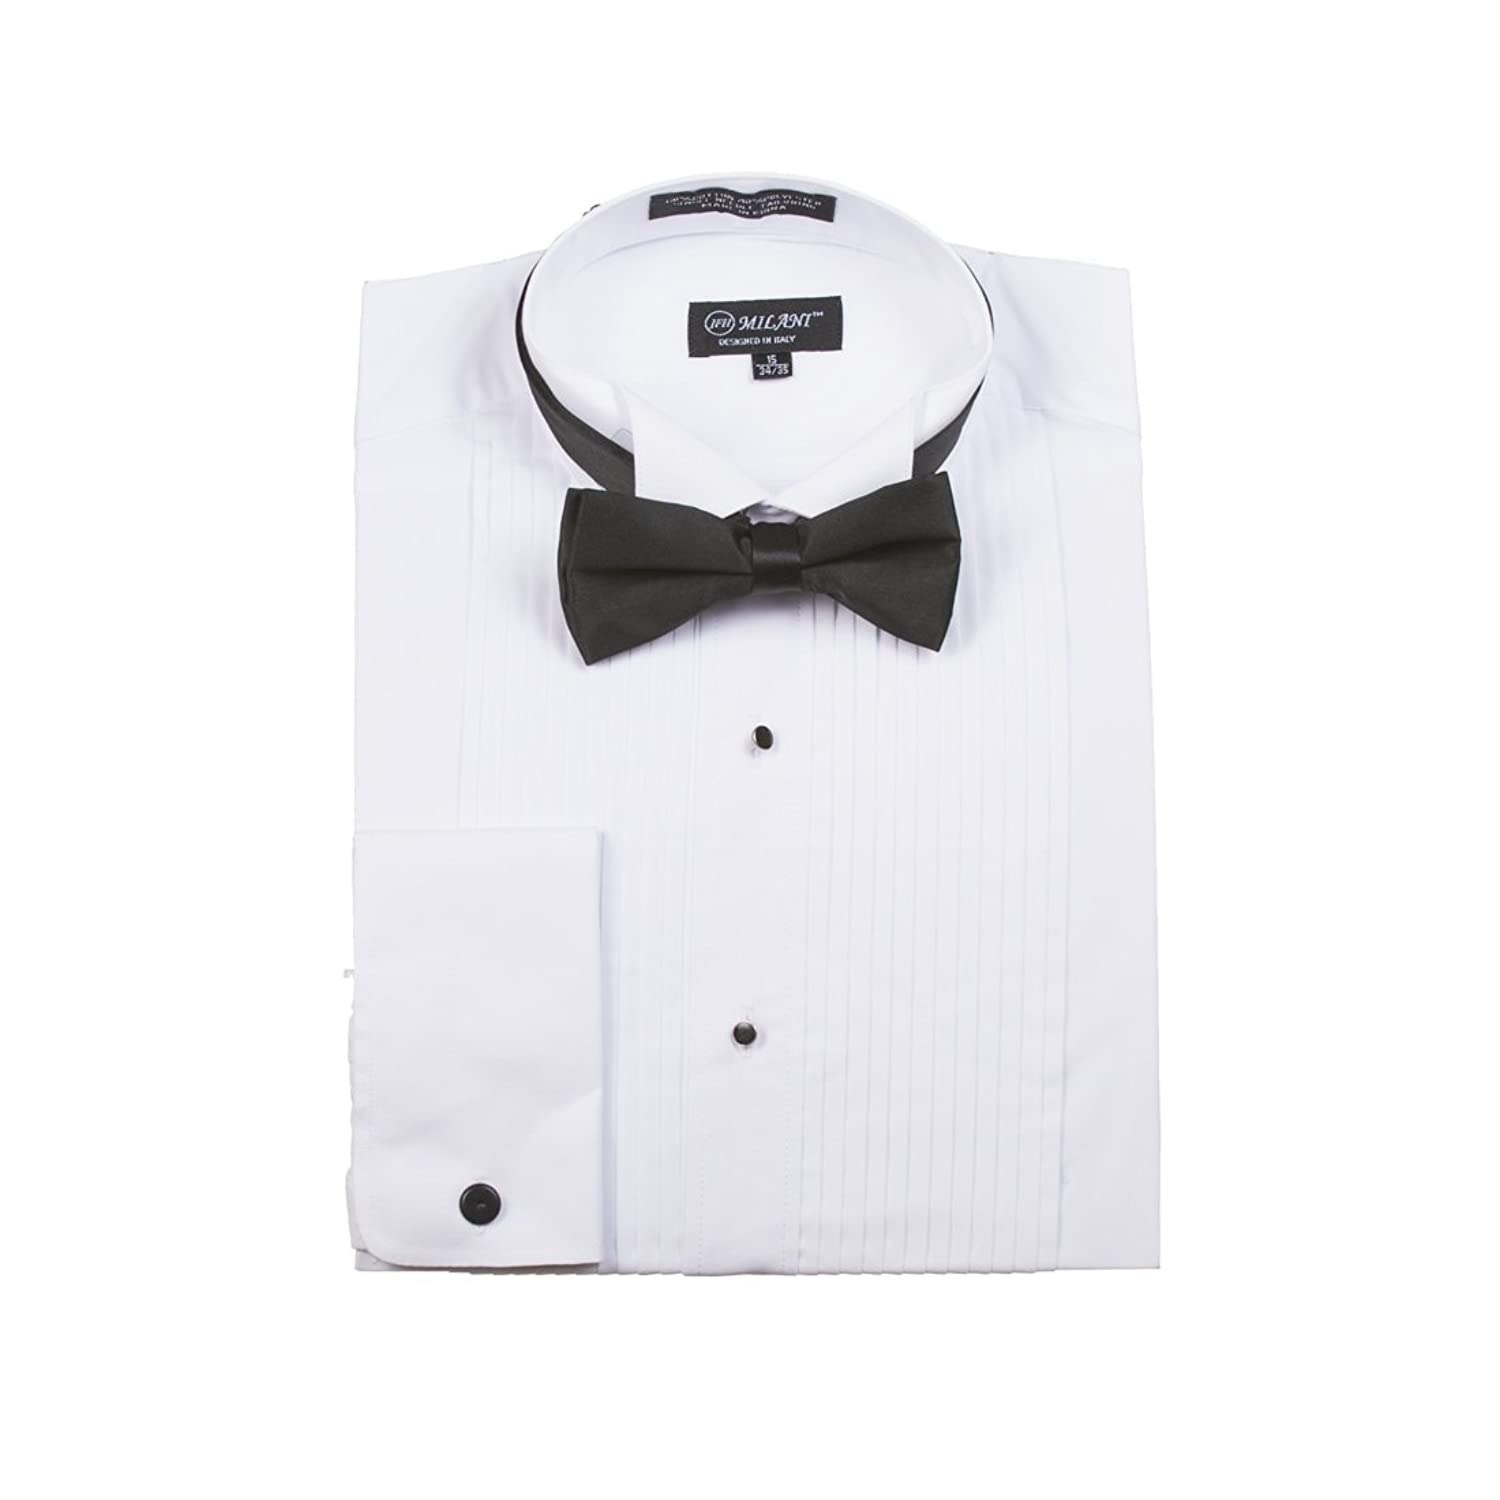 2132ab18fc2 Men s Tuxedo Shirts with French Cuffs and Bow Tie